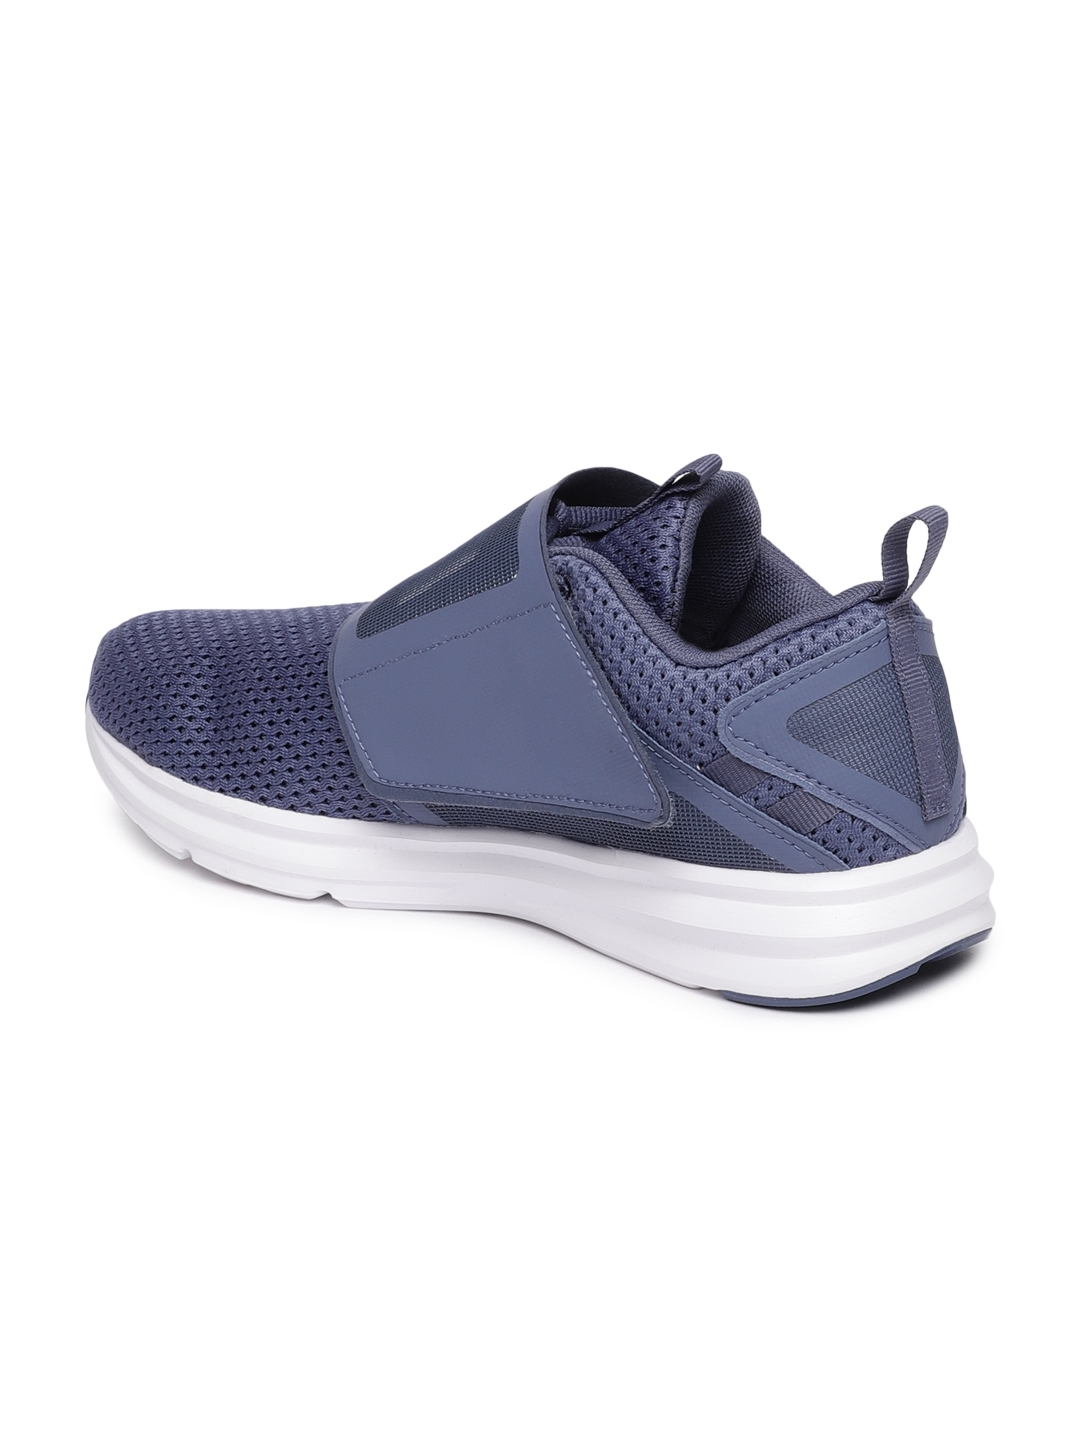 Buy Puma Women Blue Enzo Strap Sneakers Casual Shoes for